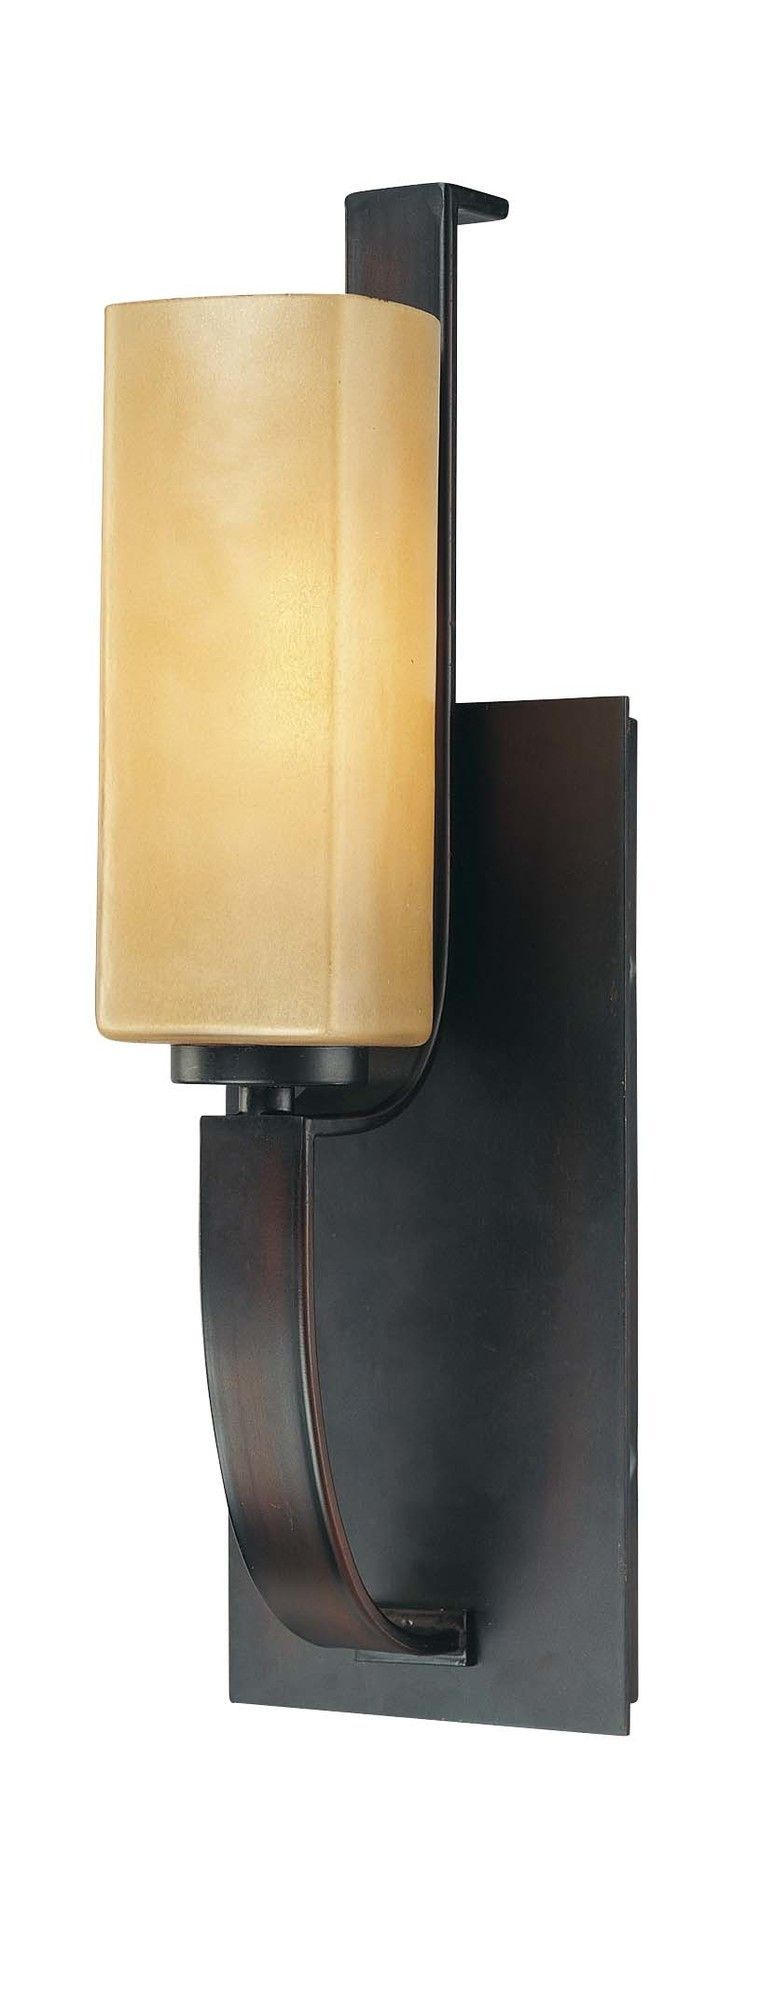 Kinston 1 Light Wall Sconce | Products | Pinterest | Wall sconces ...